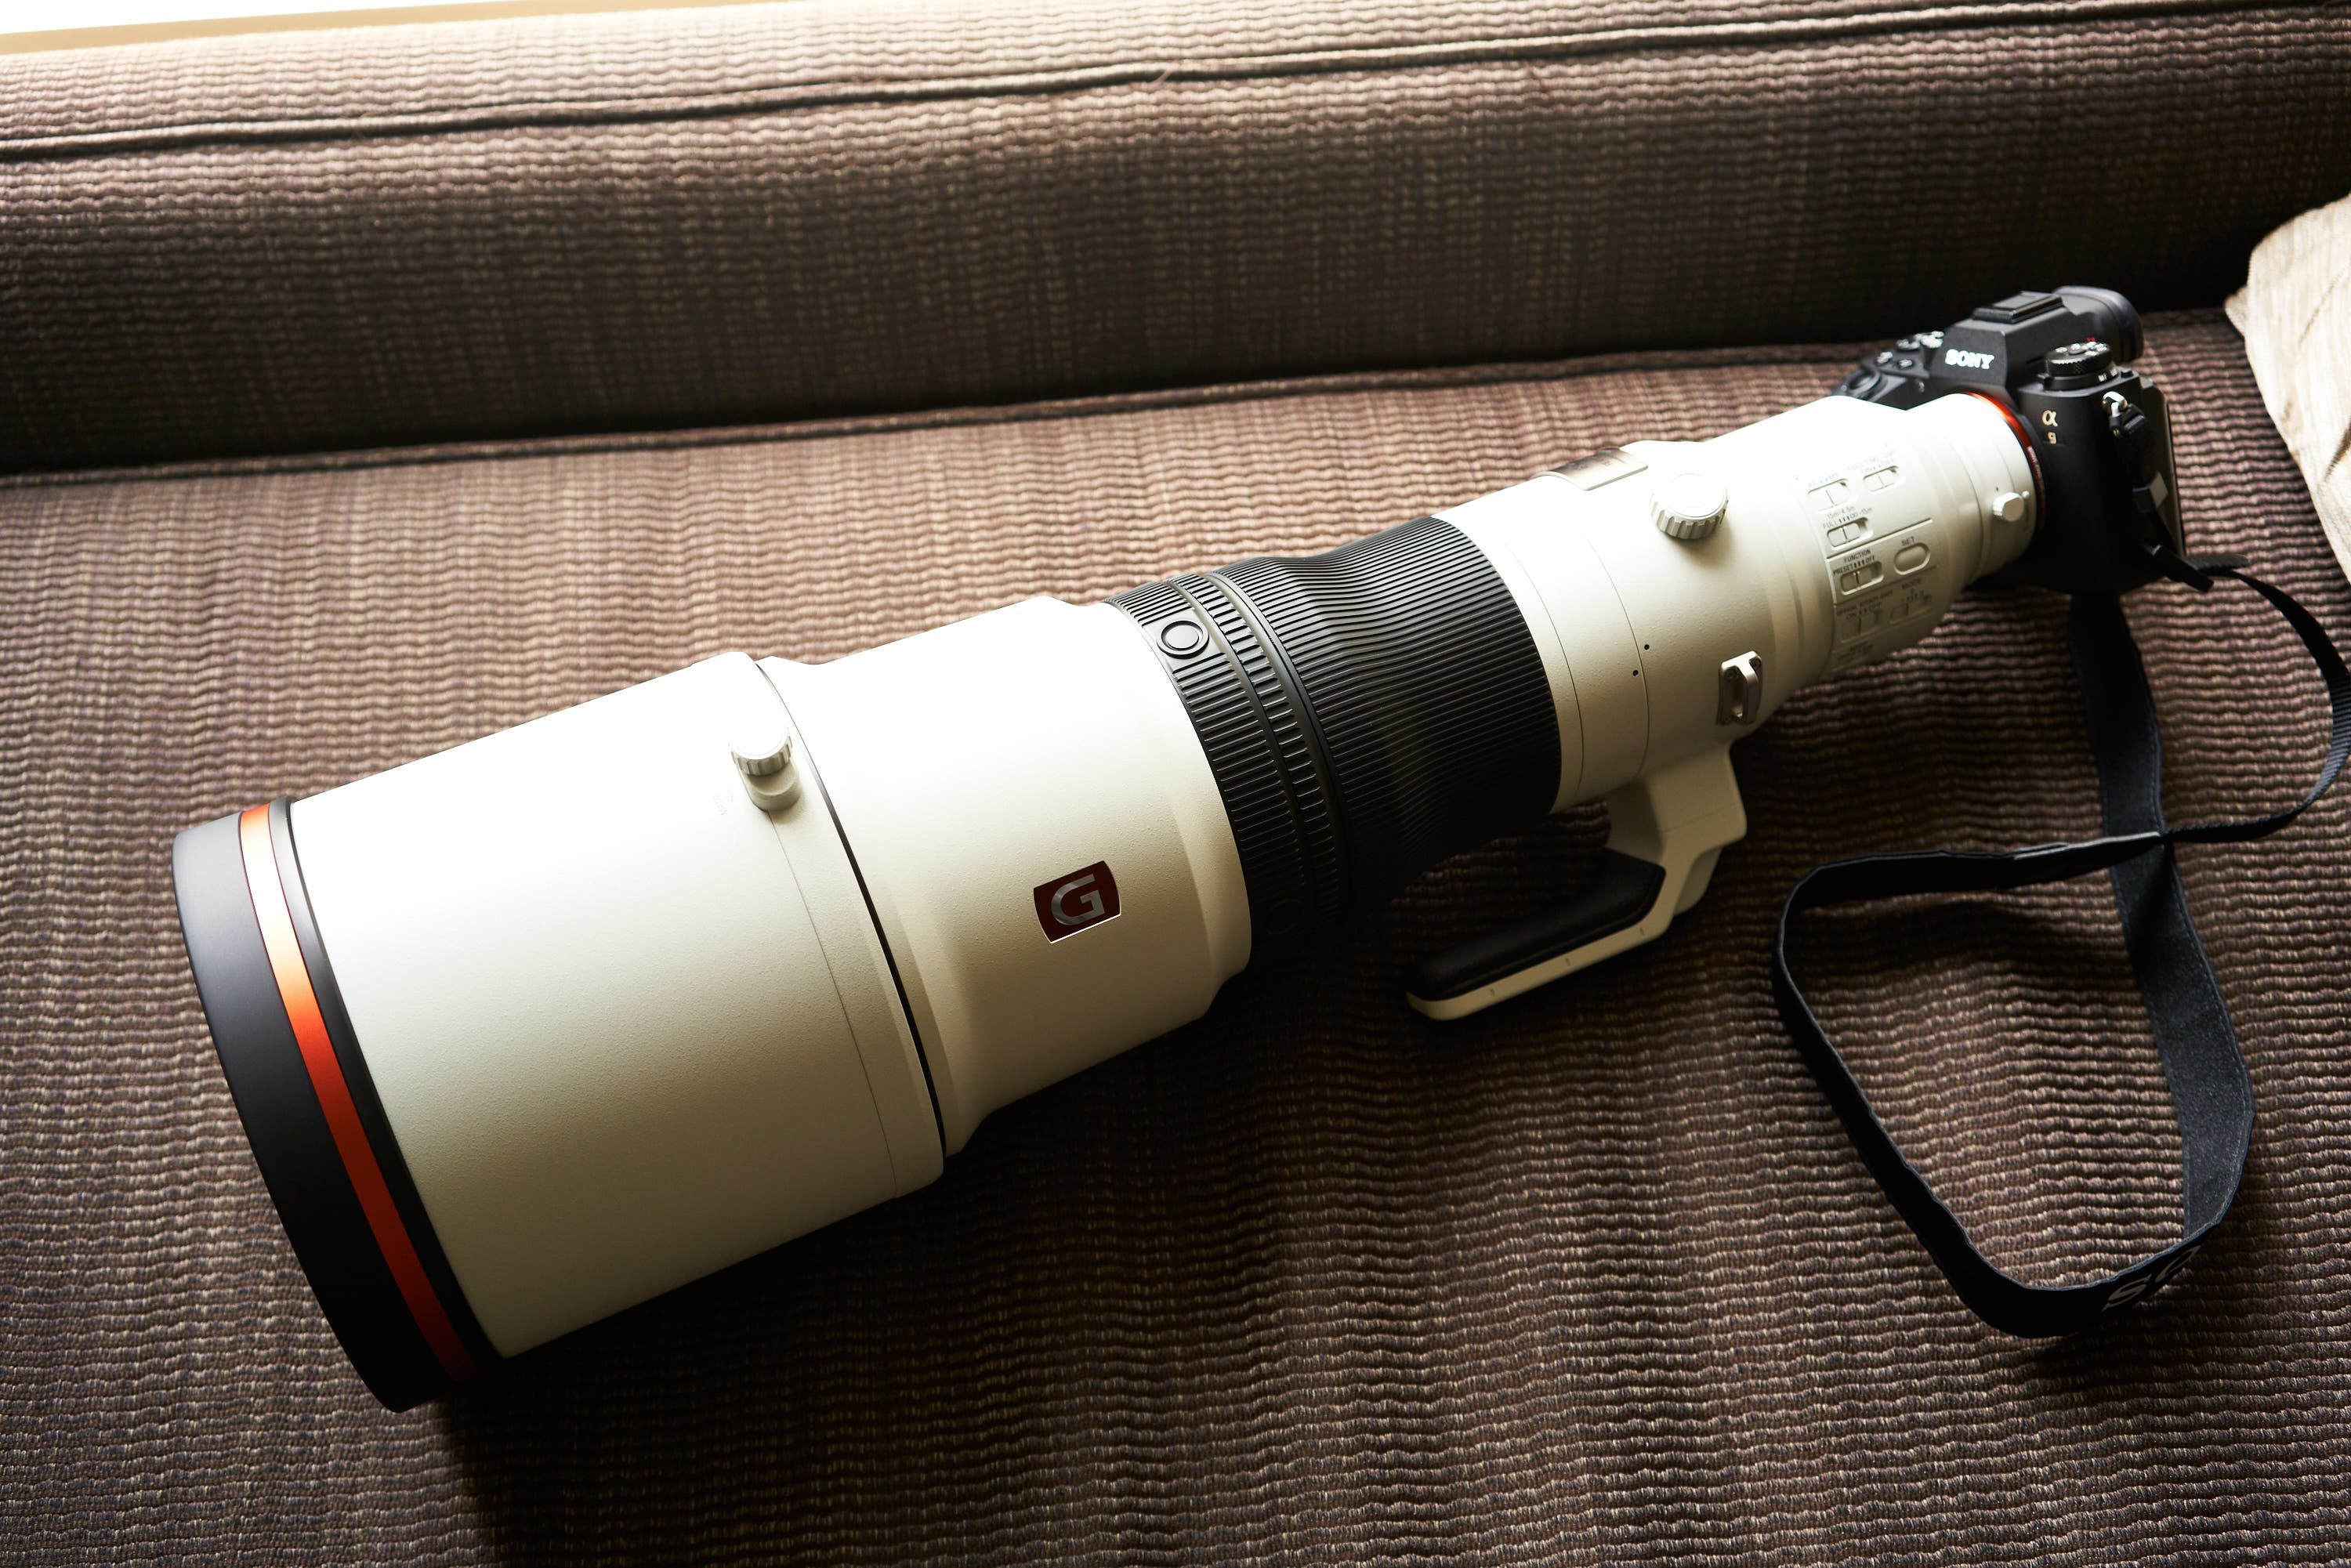 Review: Sony 600mm F4 G Master OSS (A Bird Photographer's Dream)